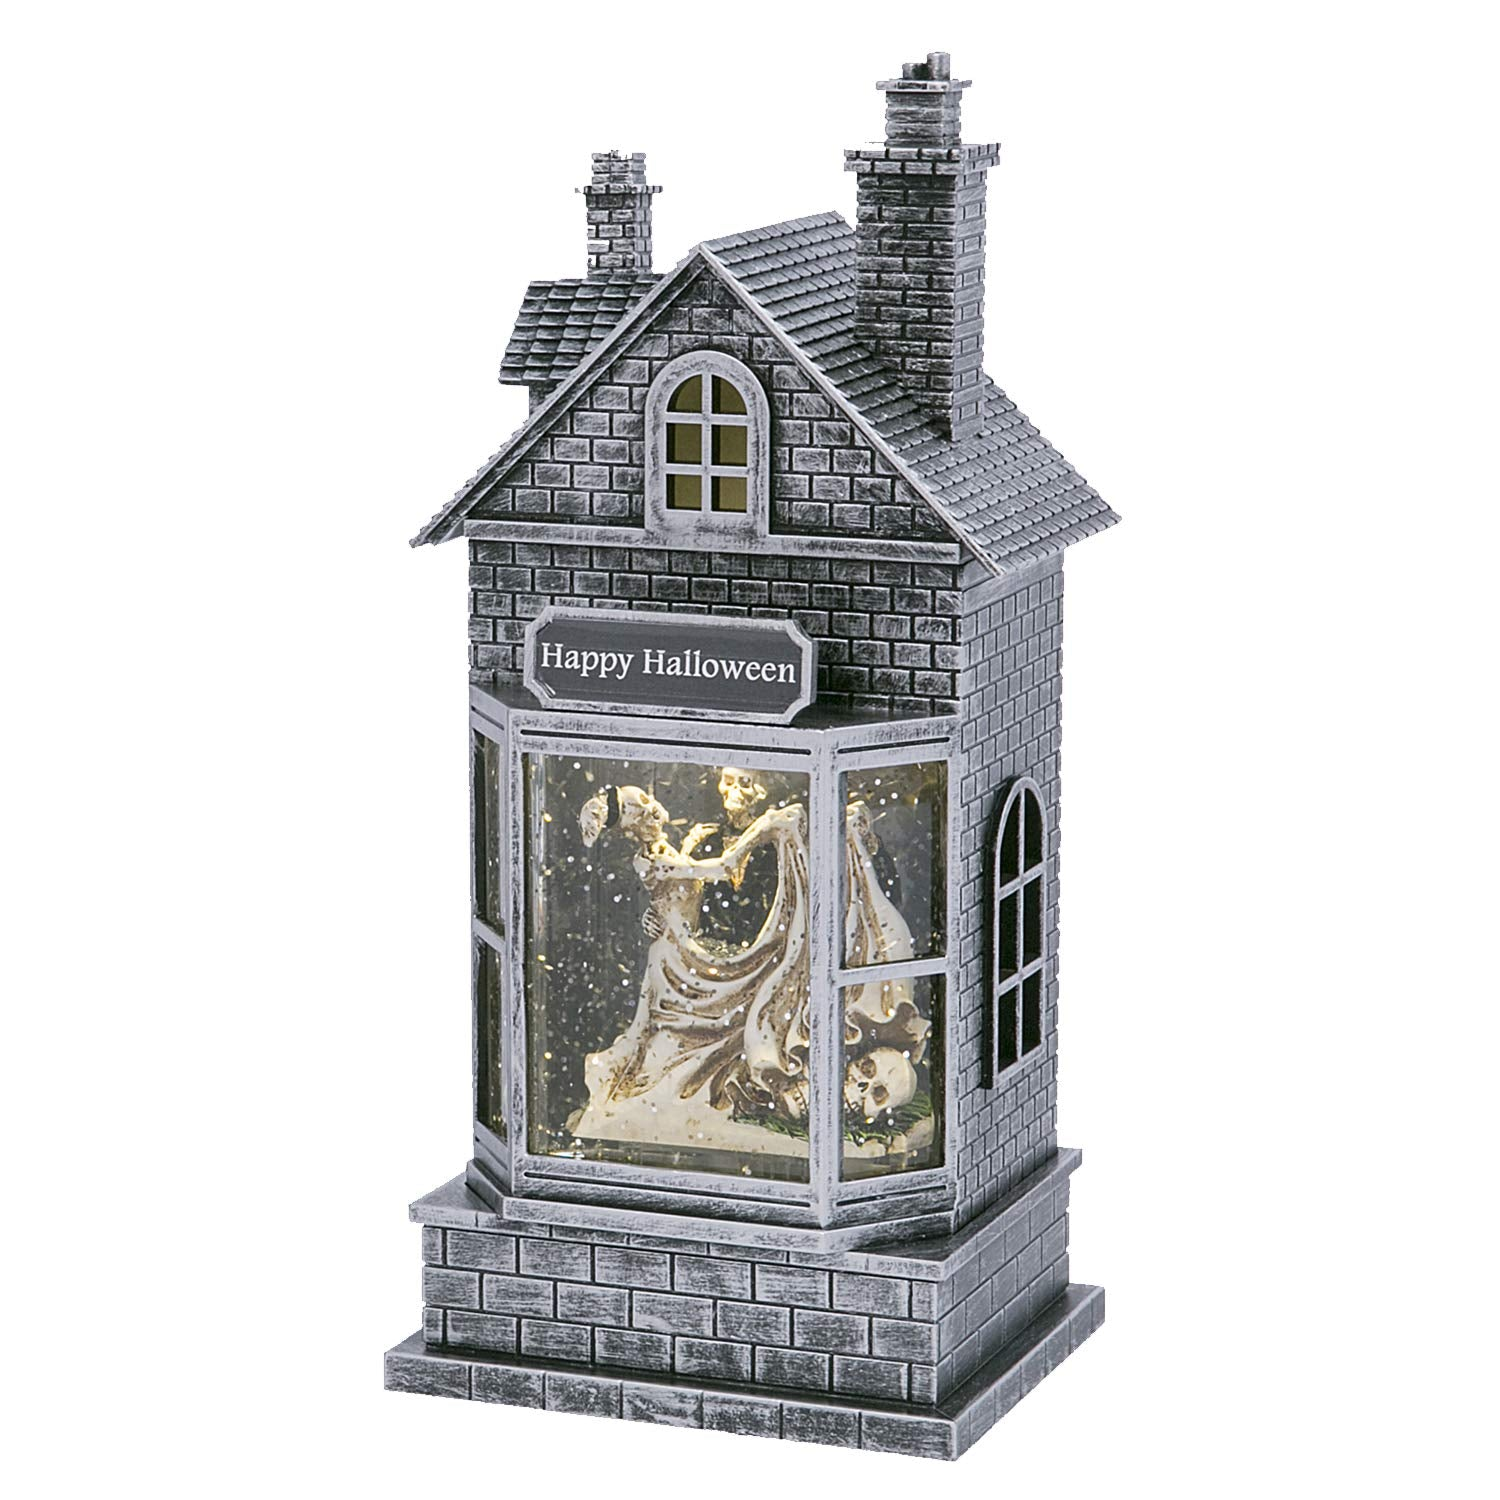 Elegant Light Up Animated Haunted House Water Globe with Spinning Halloween Figures – Tabletop Halloween Decoration Skeletons